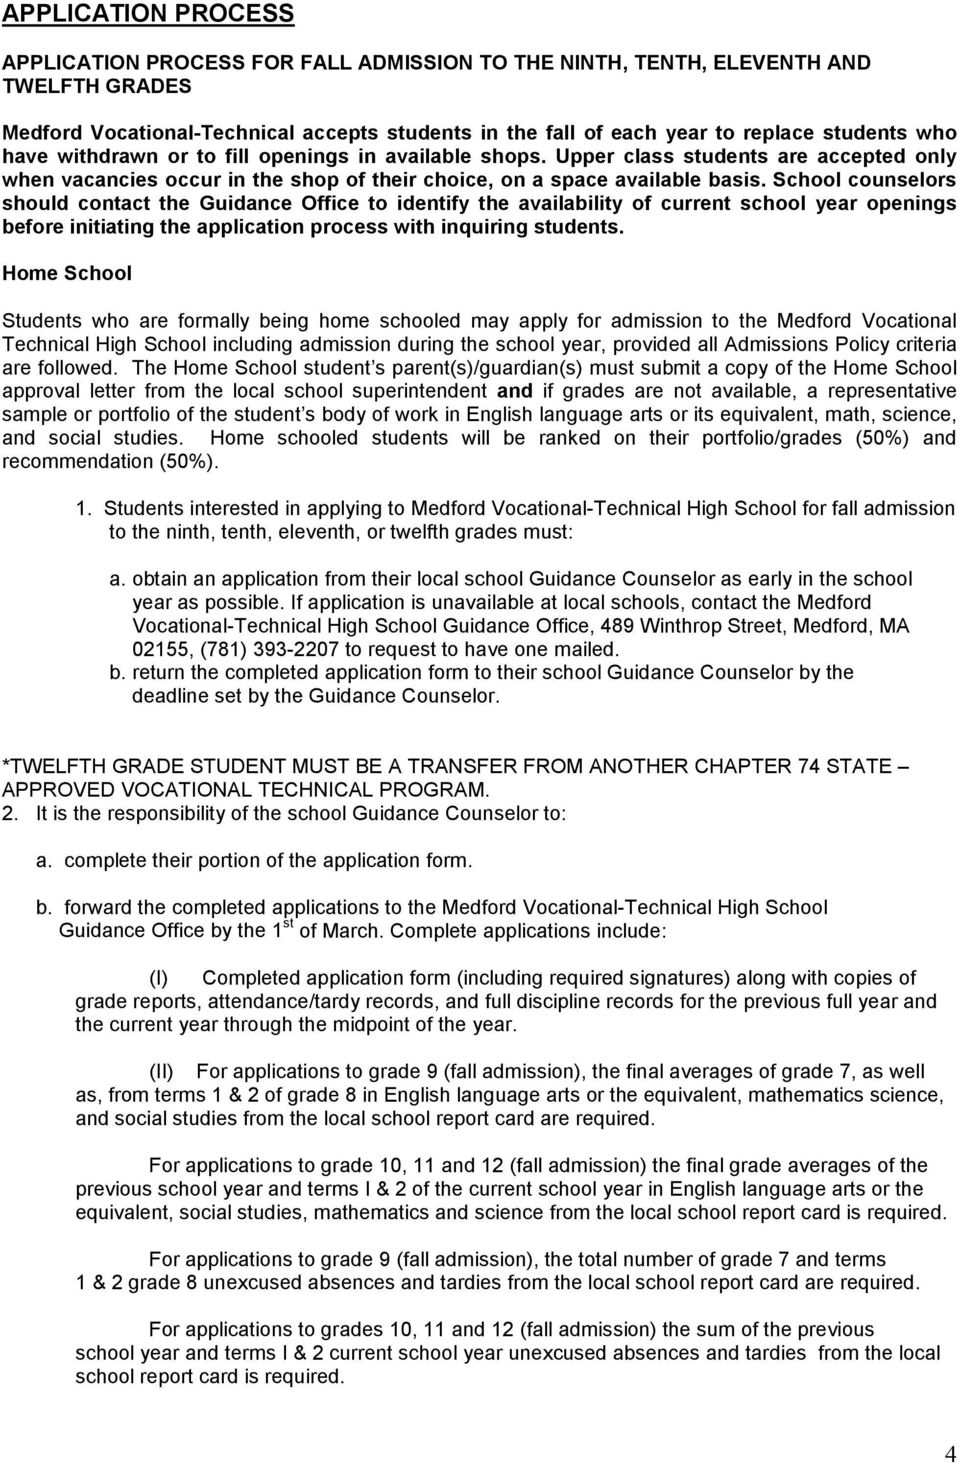 MEDFORD VOCATIONAL-TECHNICAL HIGH SCHOOL ADMISSION POLICY  February PDF